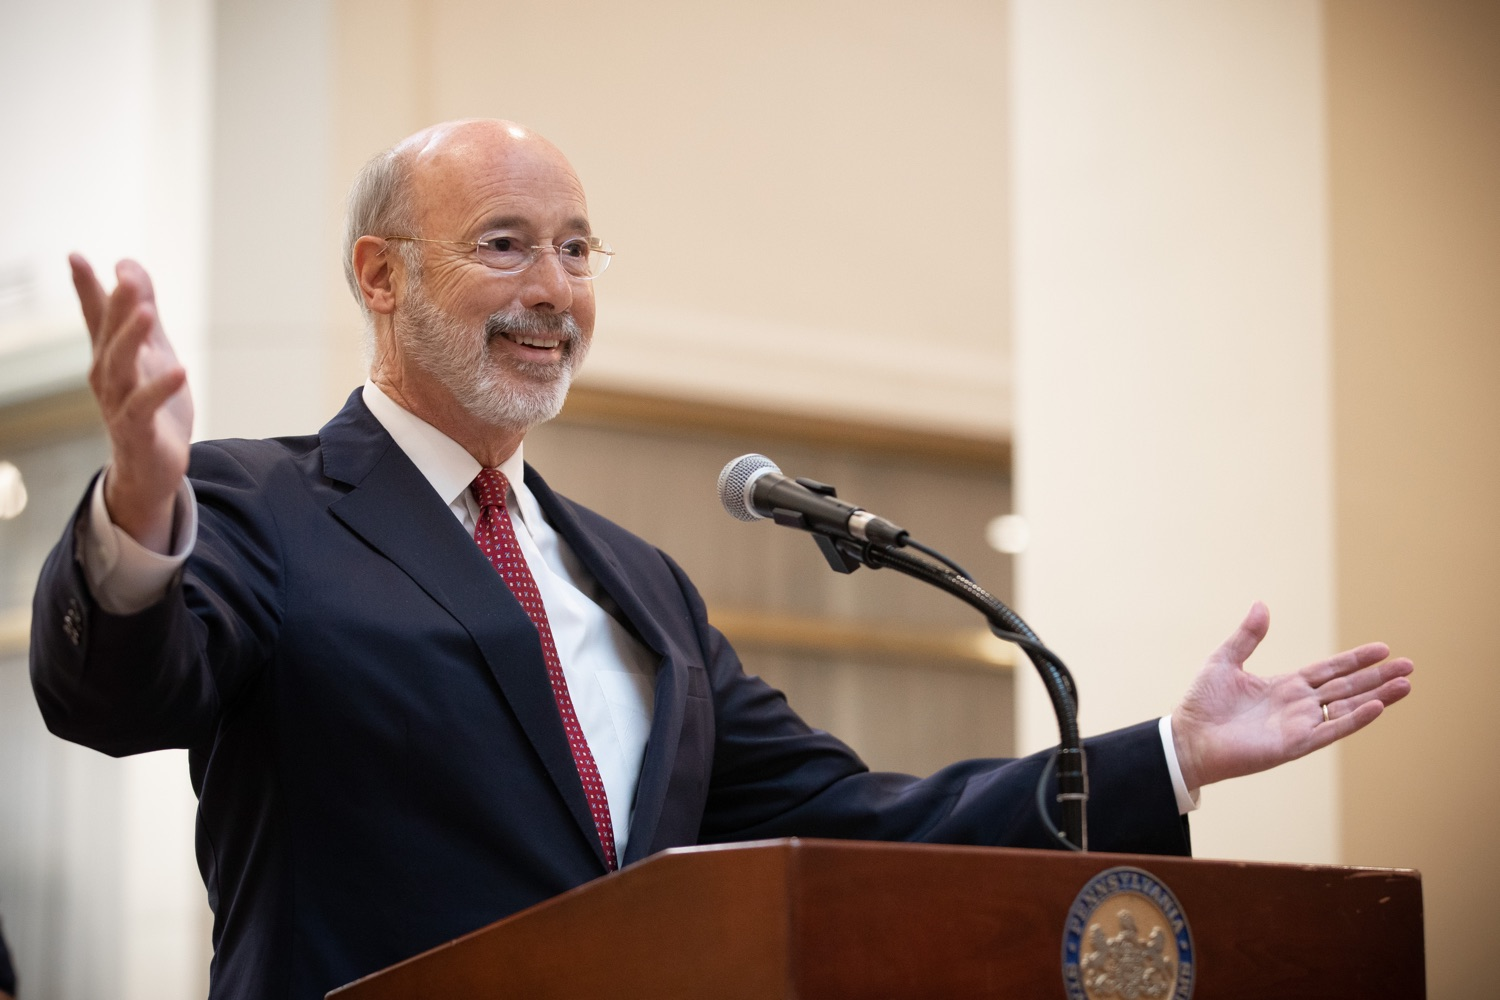 """<a href=""""https://filesource.wostreaming.net/commonwealthofpa/photo/17587_gov_pasmart_rural_robotics_dz_001.jpg"""" target=""""_blank"""">⇣Download Photo<br></a>Pennsylvania Governor Tom Wolf speaks at the robotics demonstration. Celebrating the success of the PAsmart workforce development program to create educational opportunities at schools across the commonwealth, Governor Tom Wolf welcomed more than 50 students from the Pennsylvania Rural Robotics Initiative to the Capitol today. The students from nine western Pennsylvania school districts showcased their skills in coding, robotics and drone technology. The Wolf administration awarded the initiative a $299,000 PAsmart Advancing Grant earlier this year. Harrisburg, PA  Tuesday, November 12, 2019"""